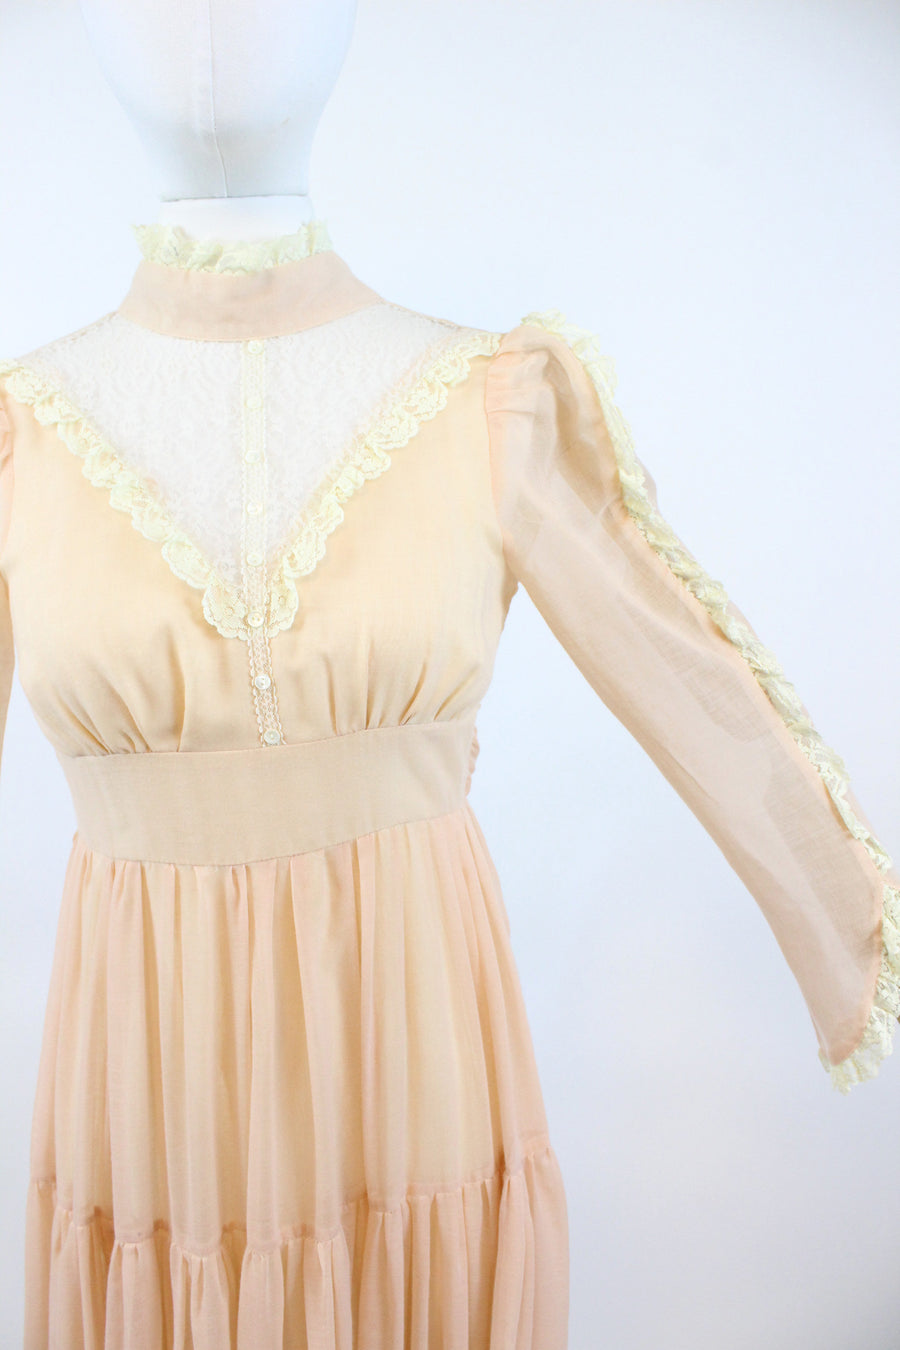 1970s Gunne Sax peach maxi dress xxs | vintage wedding dress | new in